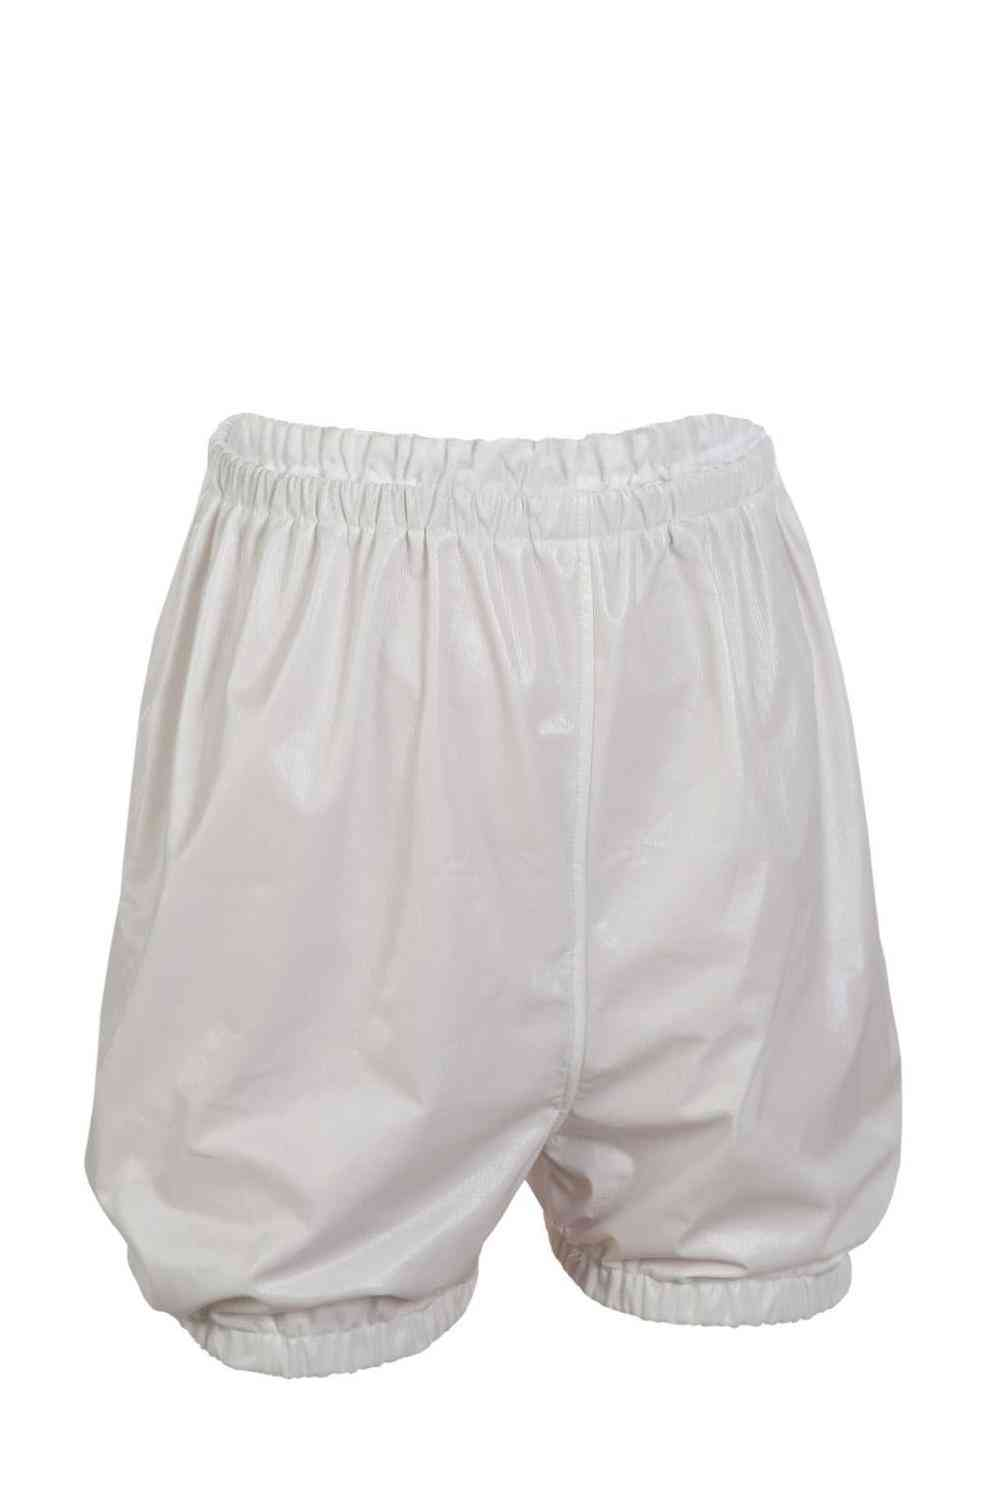 Liquid-proof Washable Patient Care Panty, Adult Briefs, Flexible And Comfortable Use